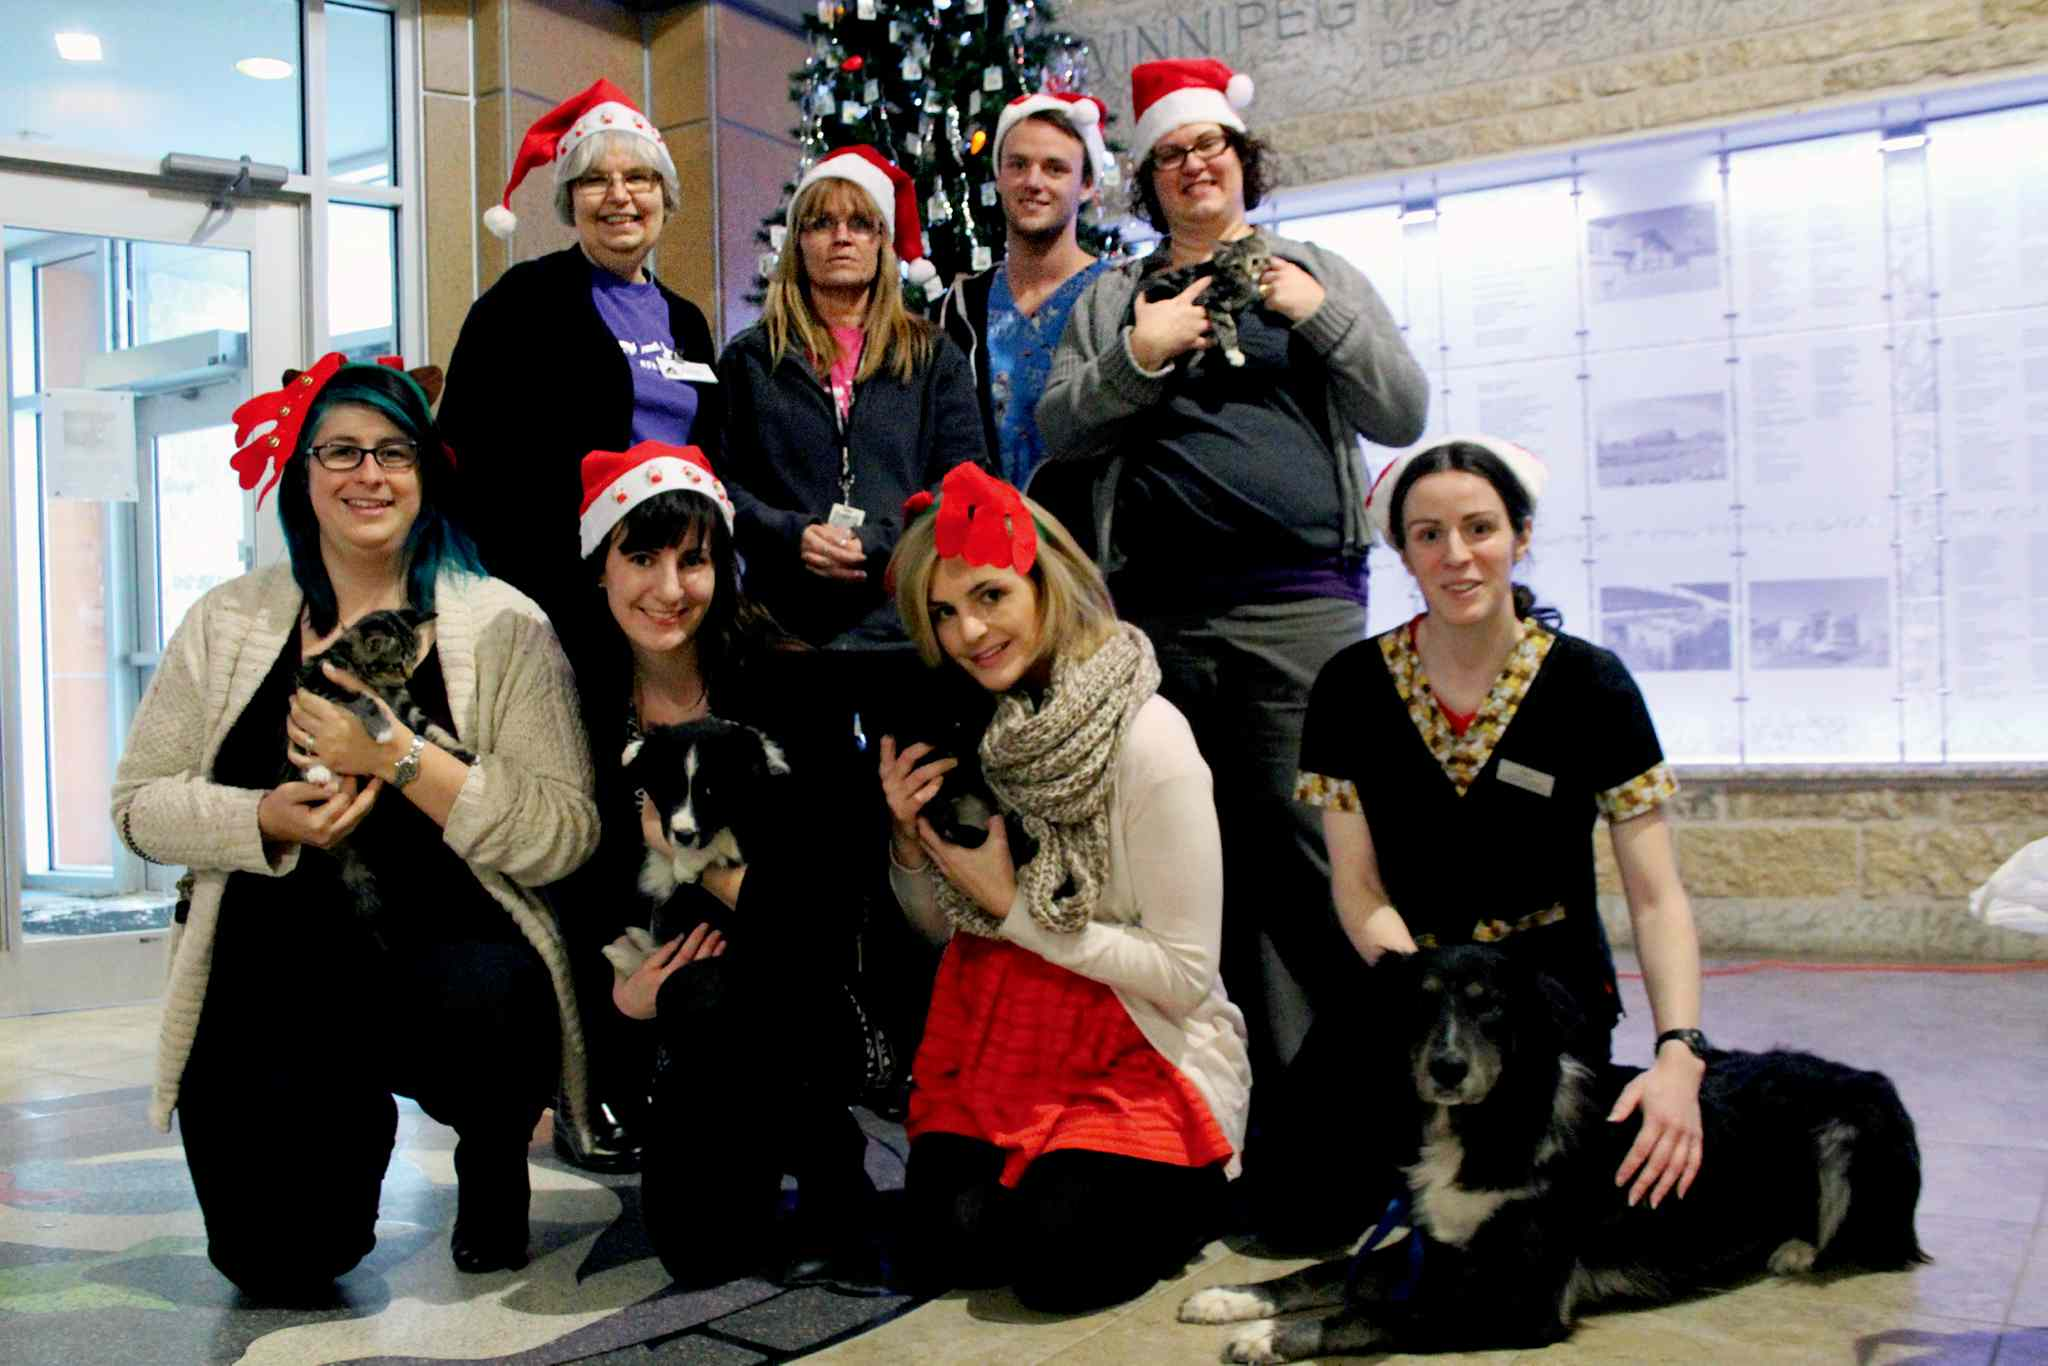 The donations department at the Winnipeg Humane Society is ready for Christmas, andhoping to receive some holiday goodwill as the society is overflowing with animals.